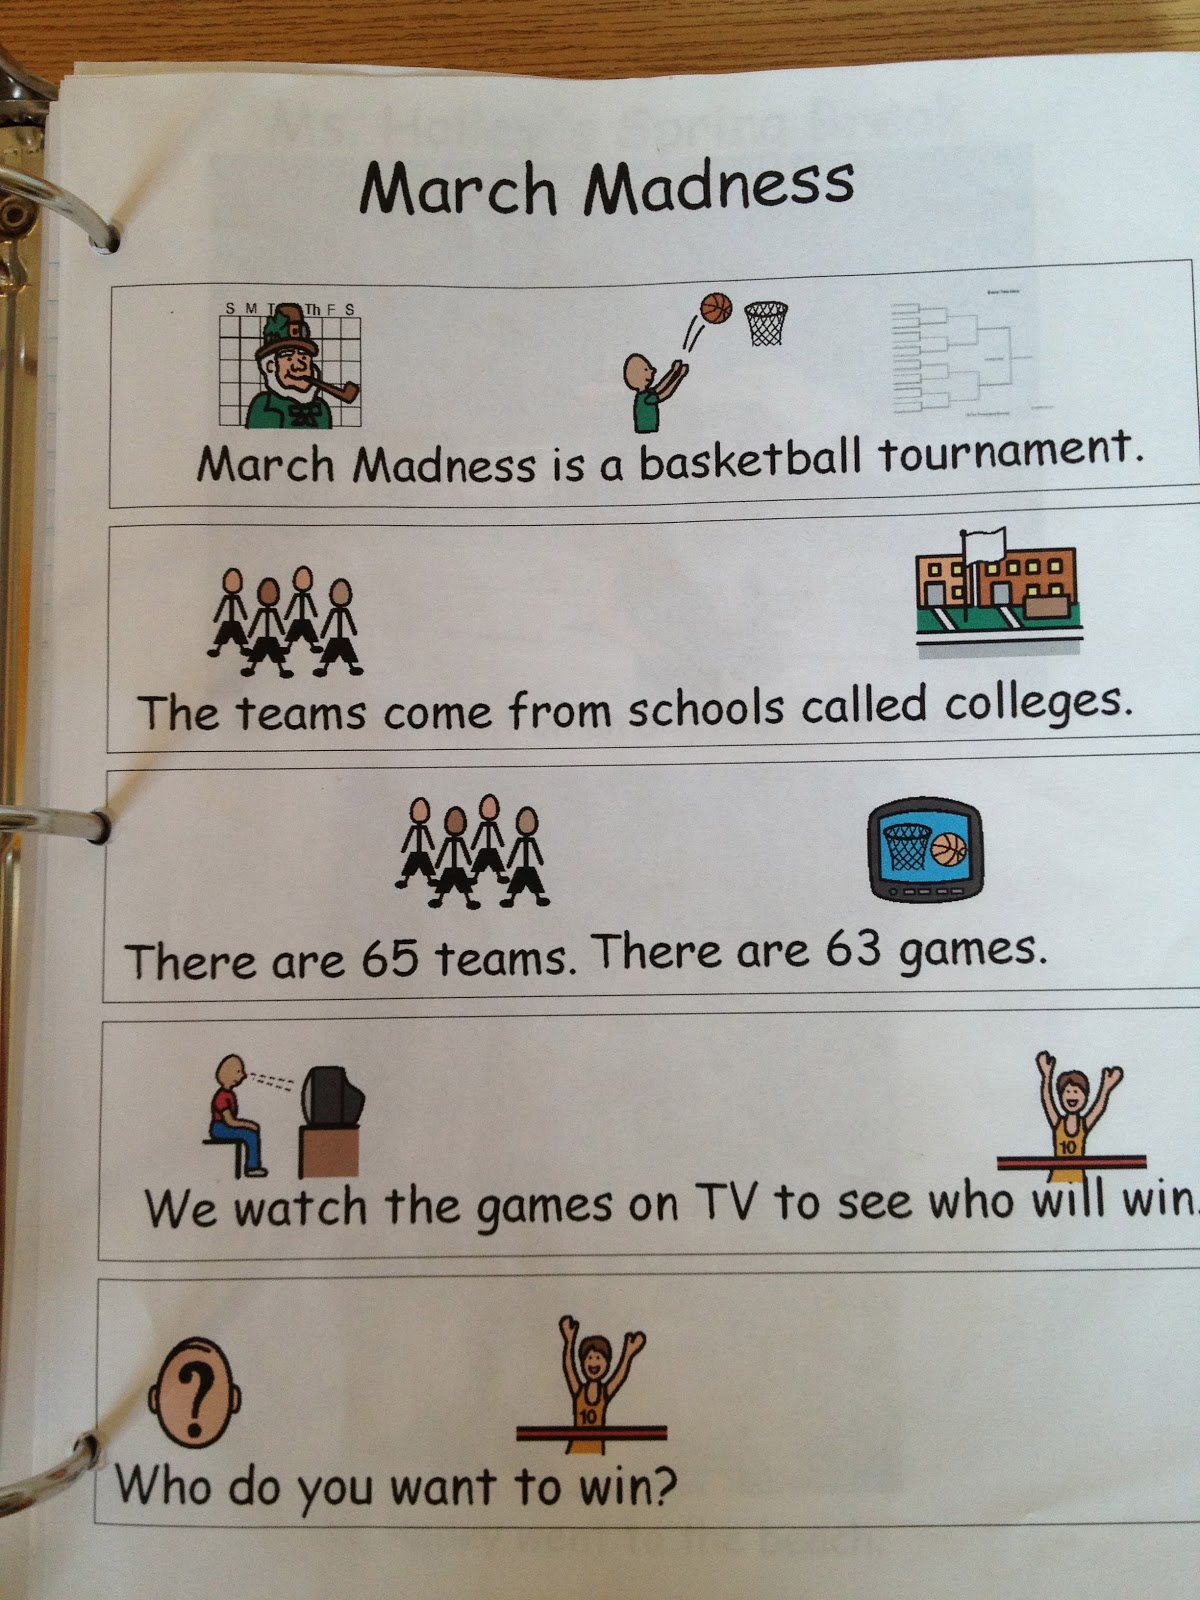 Autism Tank March Madness